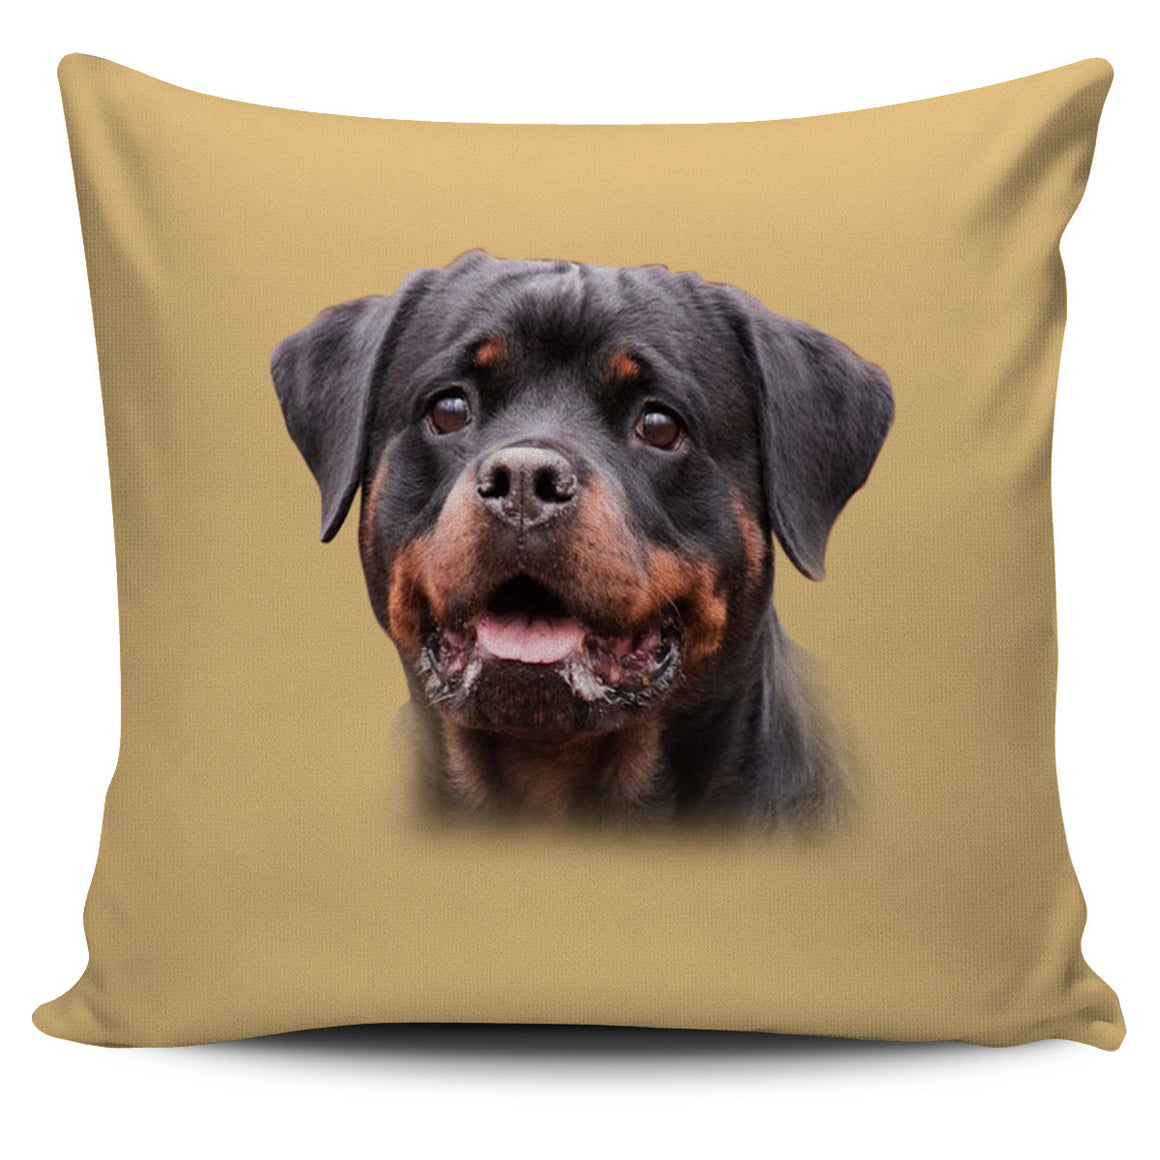 Rottweiler Cream Themed Pillow Cover